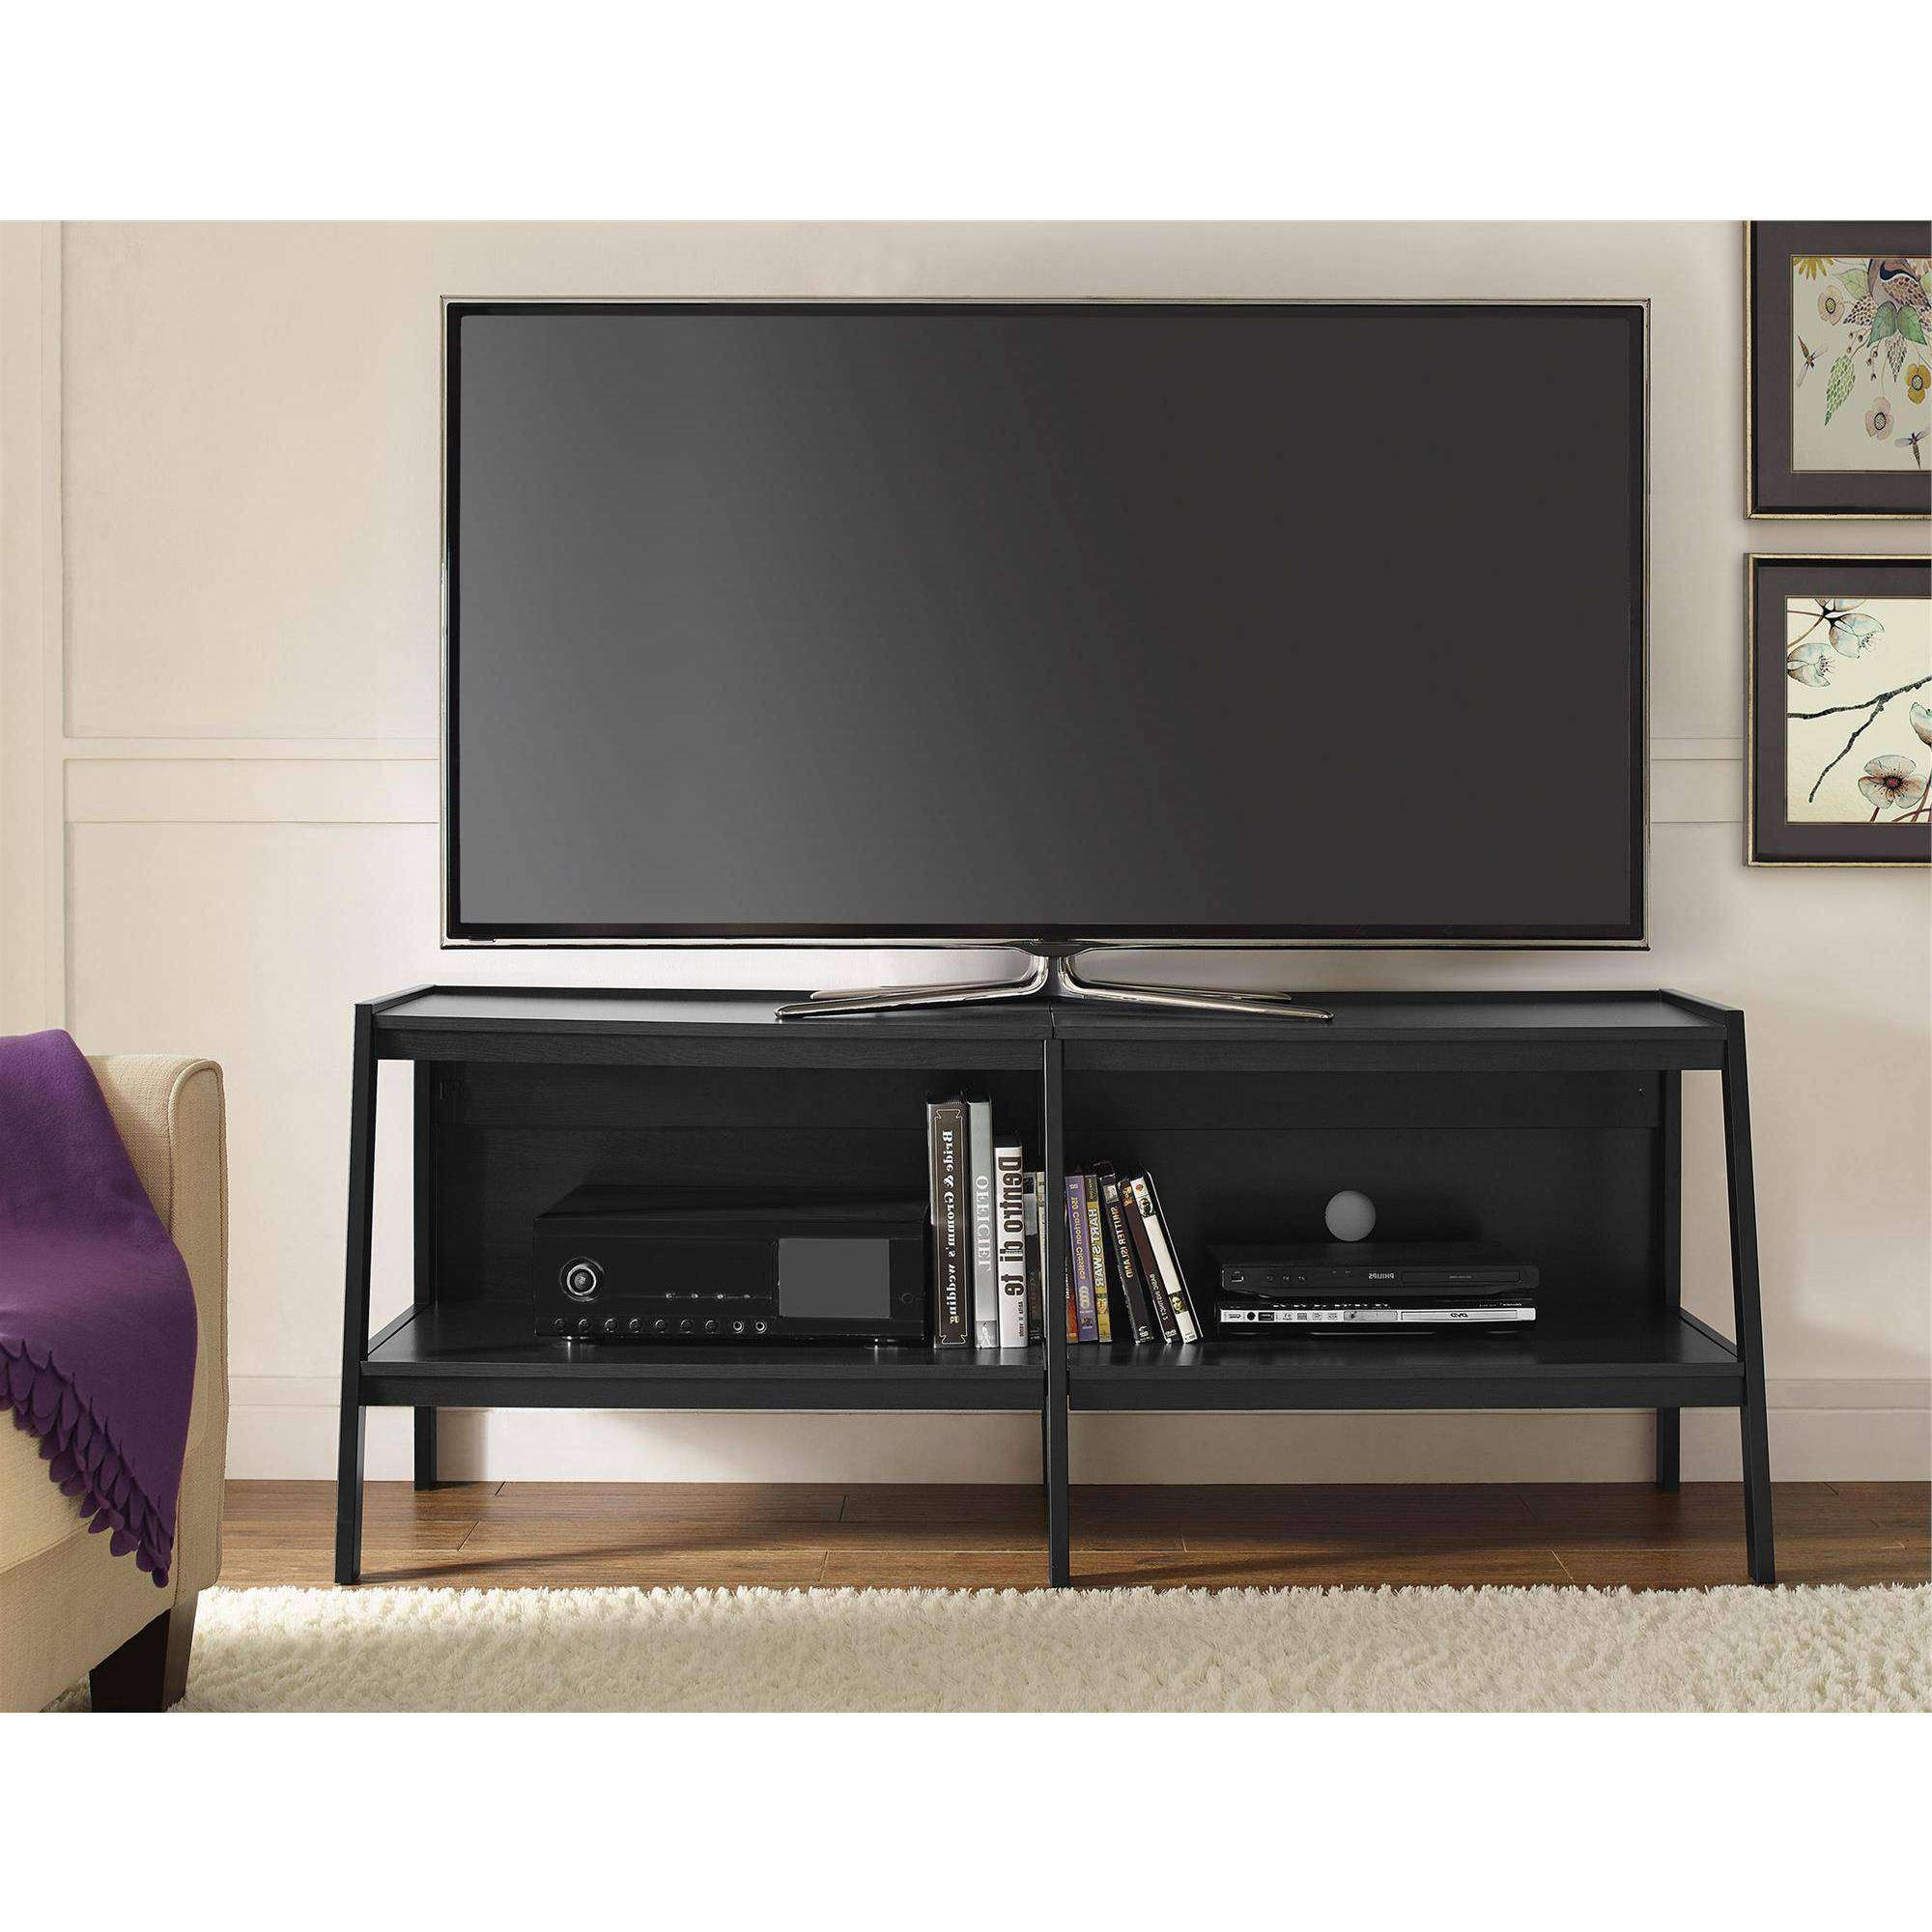 60 Inch Tv Stands Inside Tv Stands 38 Inches Wide (View 1 of 15)